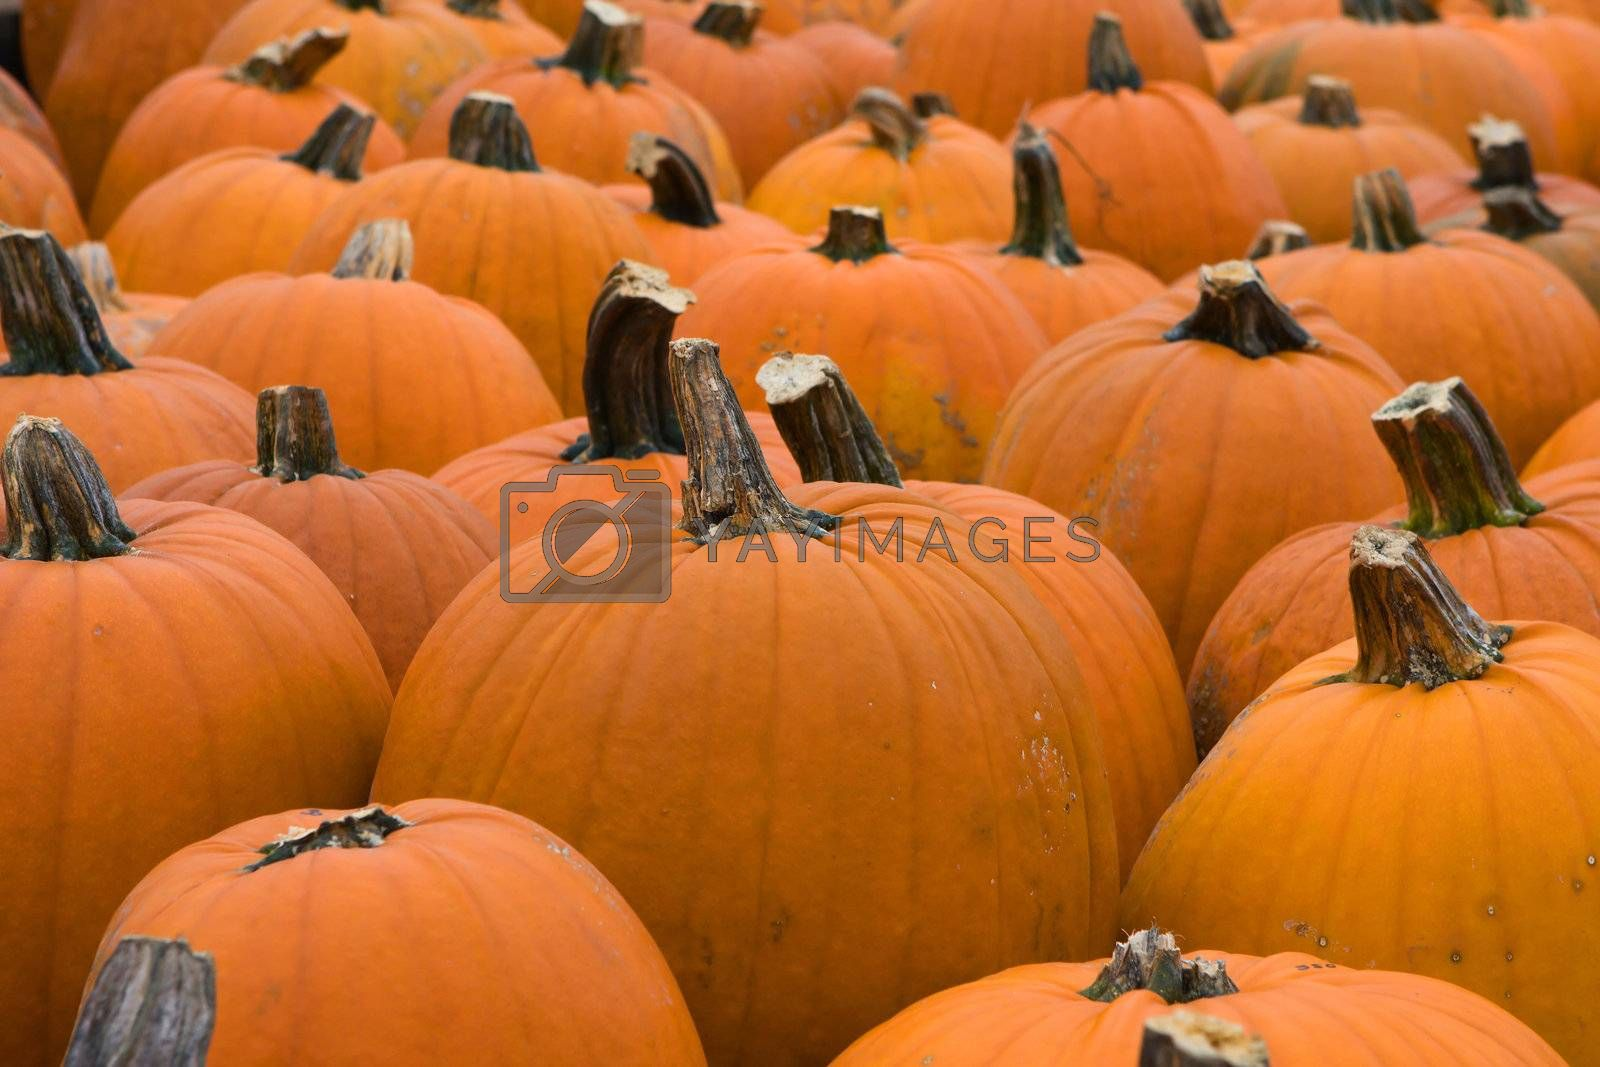 Pumpkins lines up during the Halloween holiday.